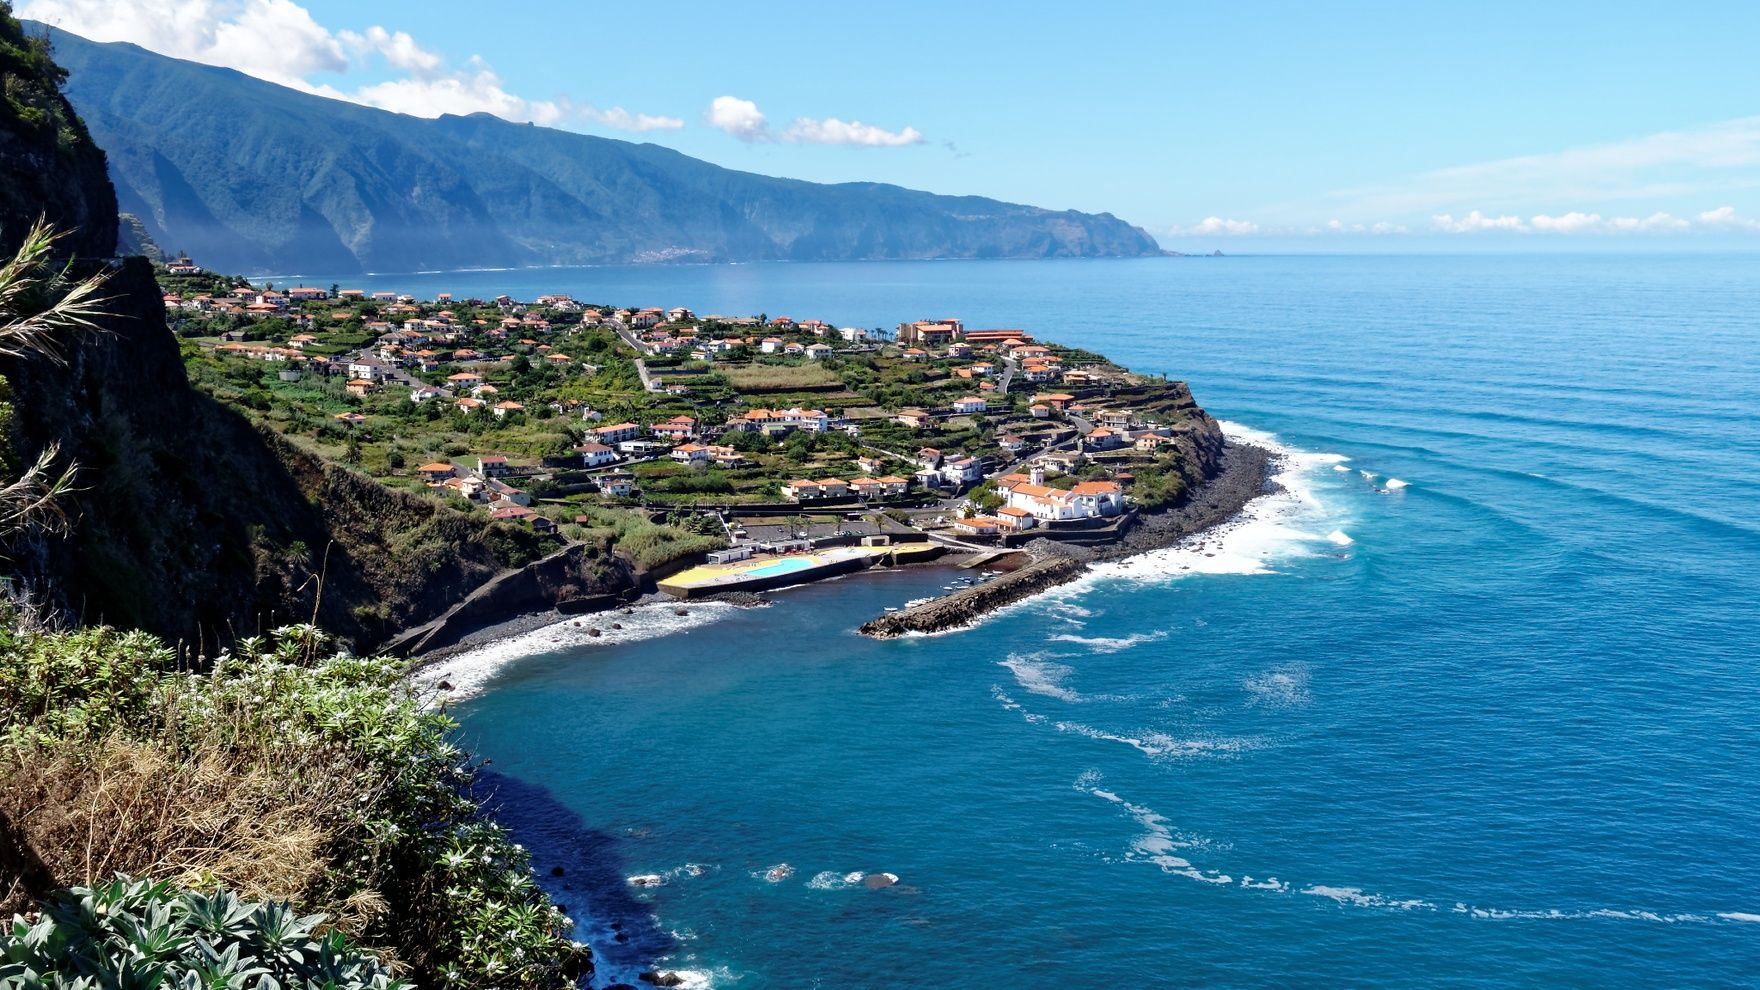 To Madeira for Madeira wine!